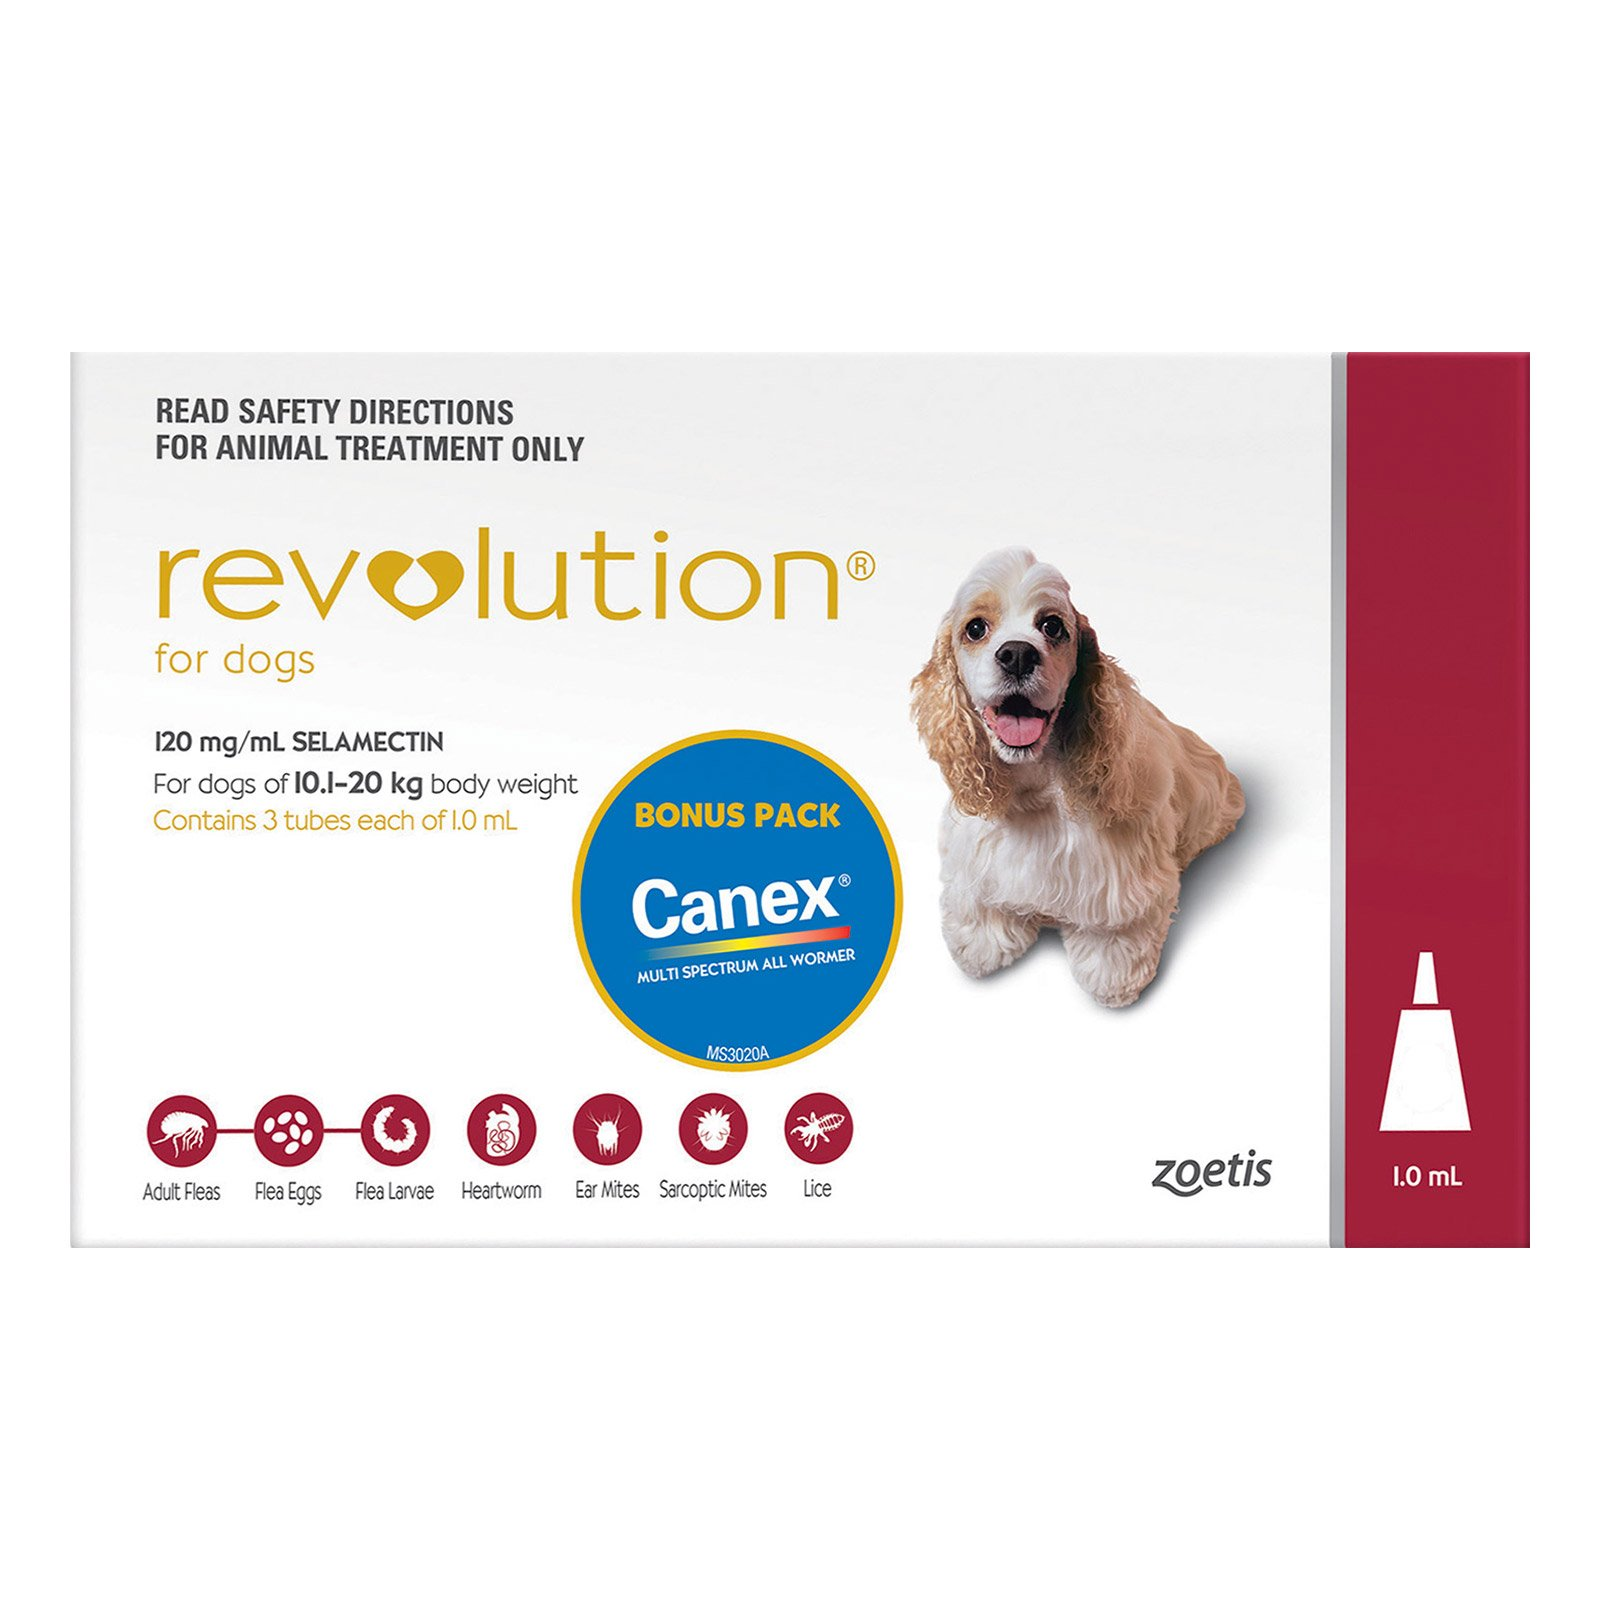 Revolution-canex-For-Medium-Dogs-10.1-To-20Kg-(Red)_01272021_224722.jpg